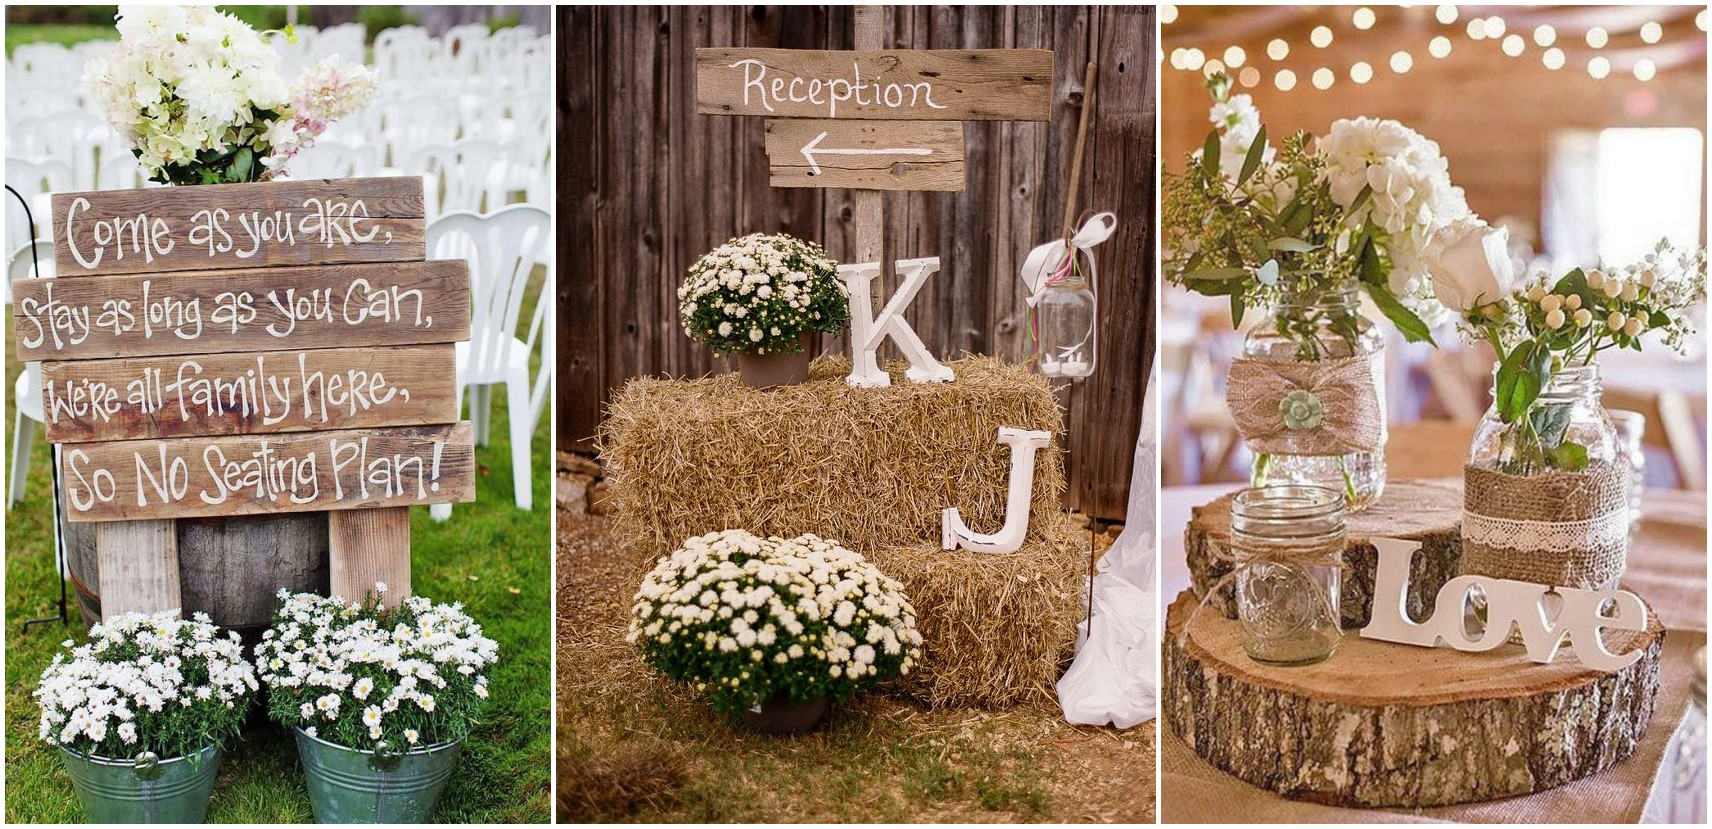 Rustic Country Wedding Ideas to Shine